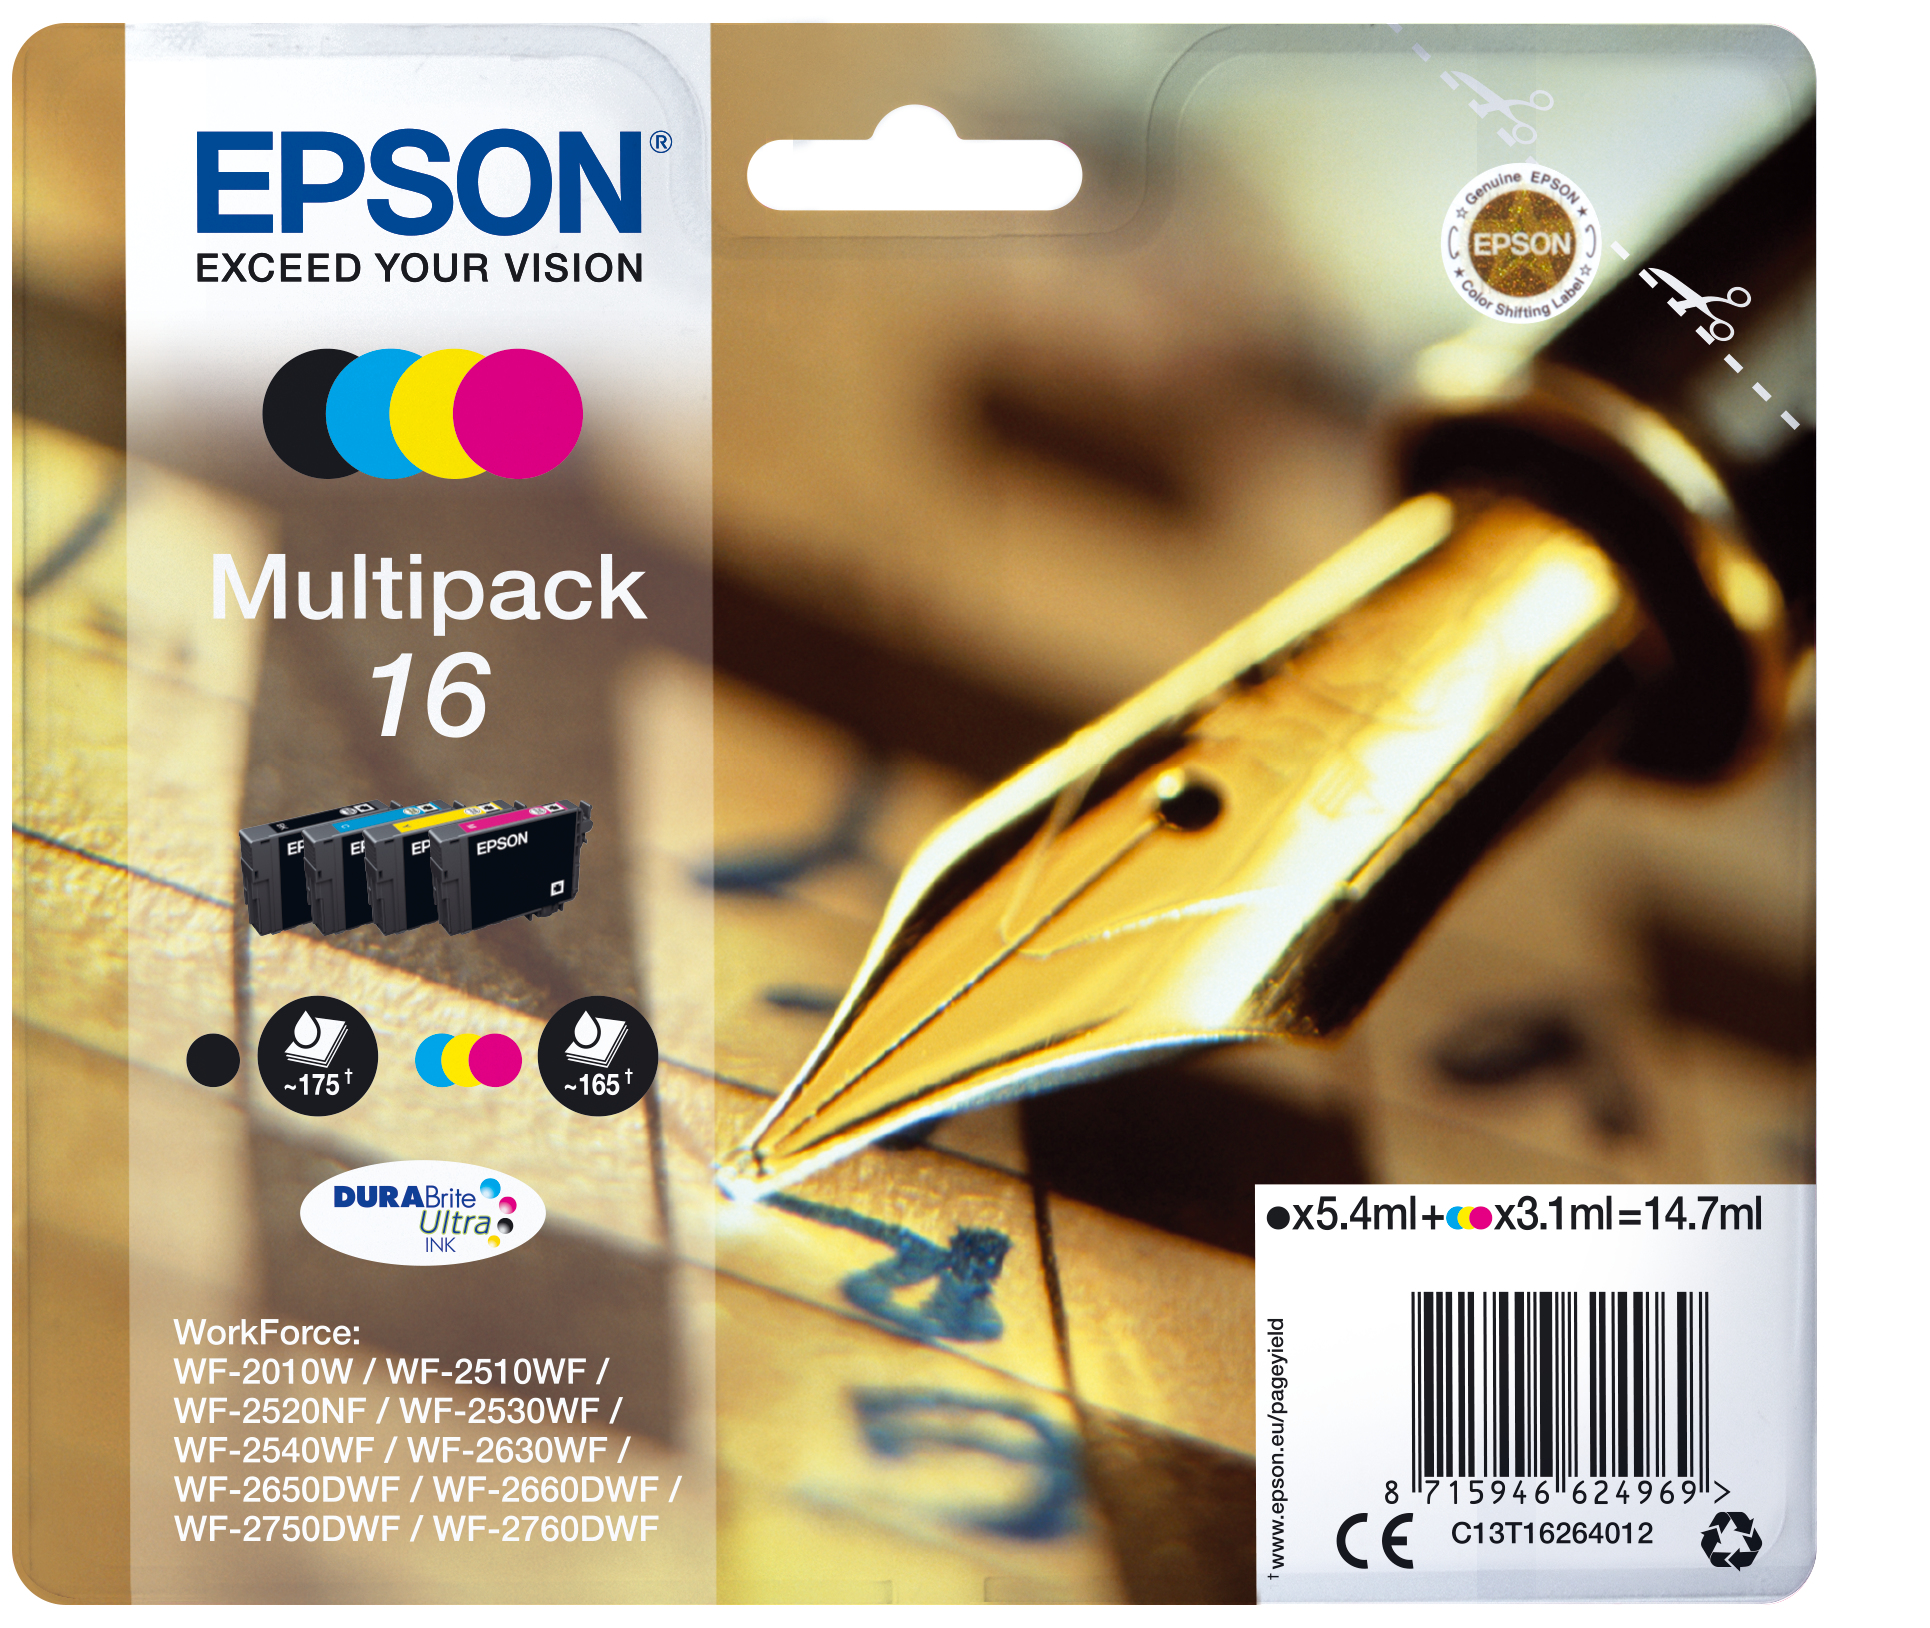 Epson Pen and crossword Multipack 16 (etiqueta RF)